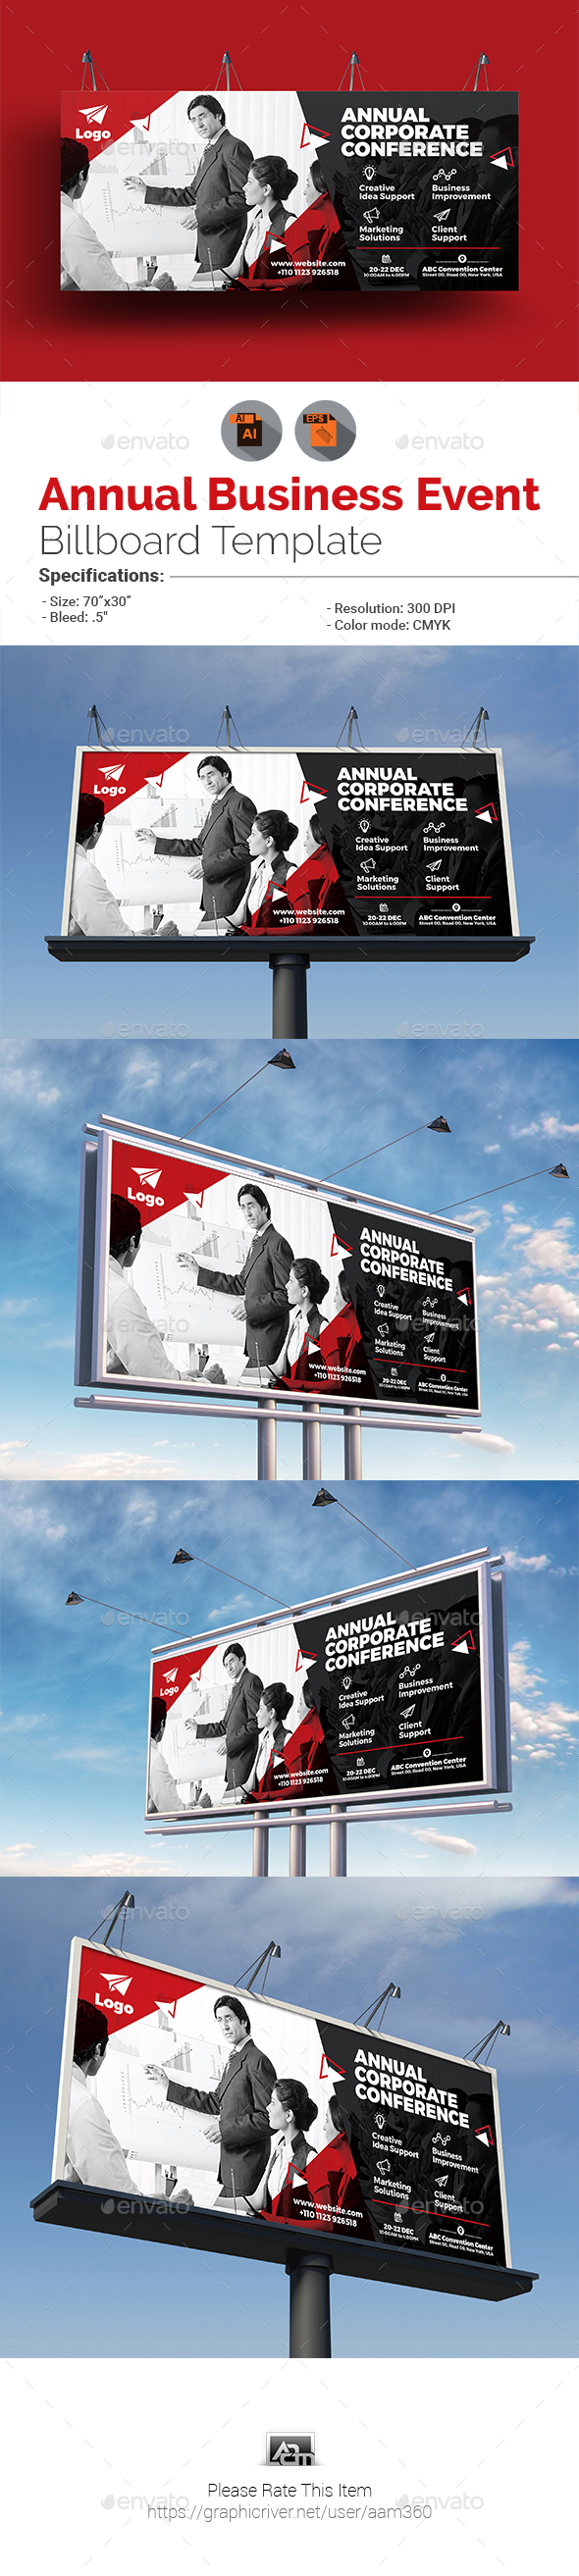 Annual Business Event Billboard Template - Signage Print Templates